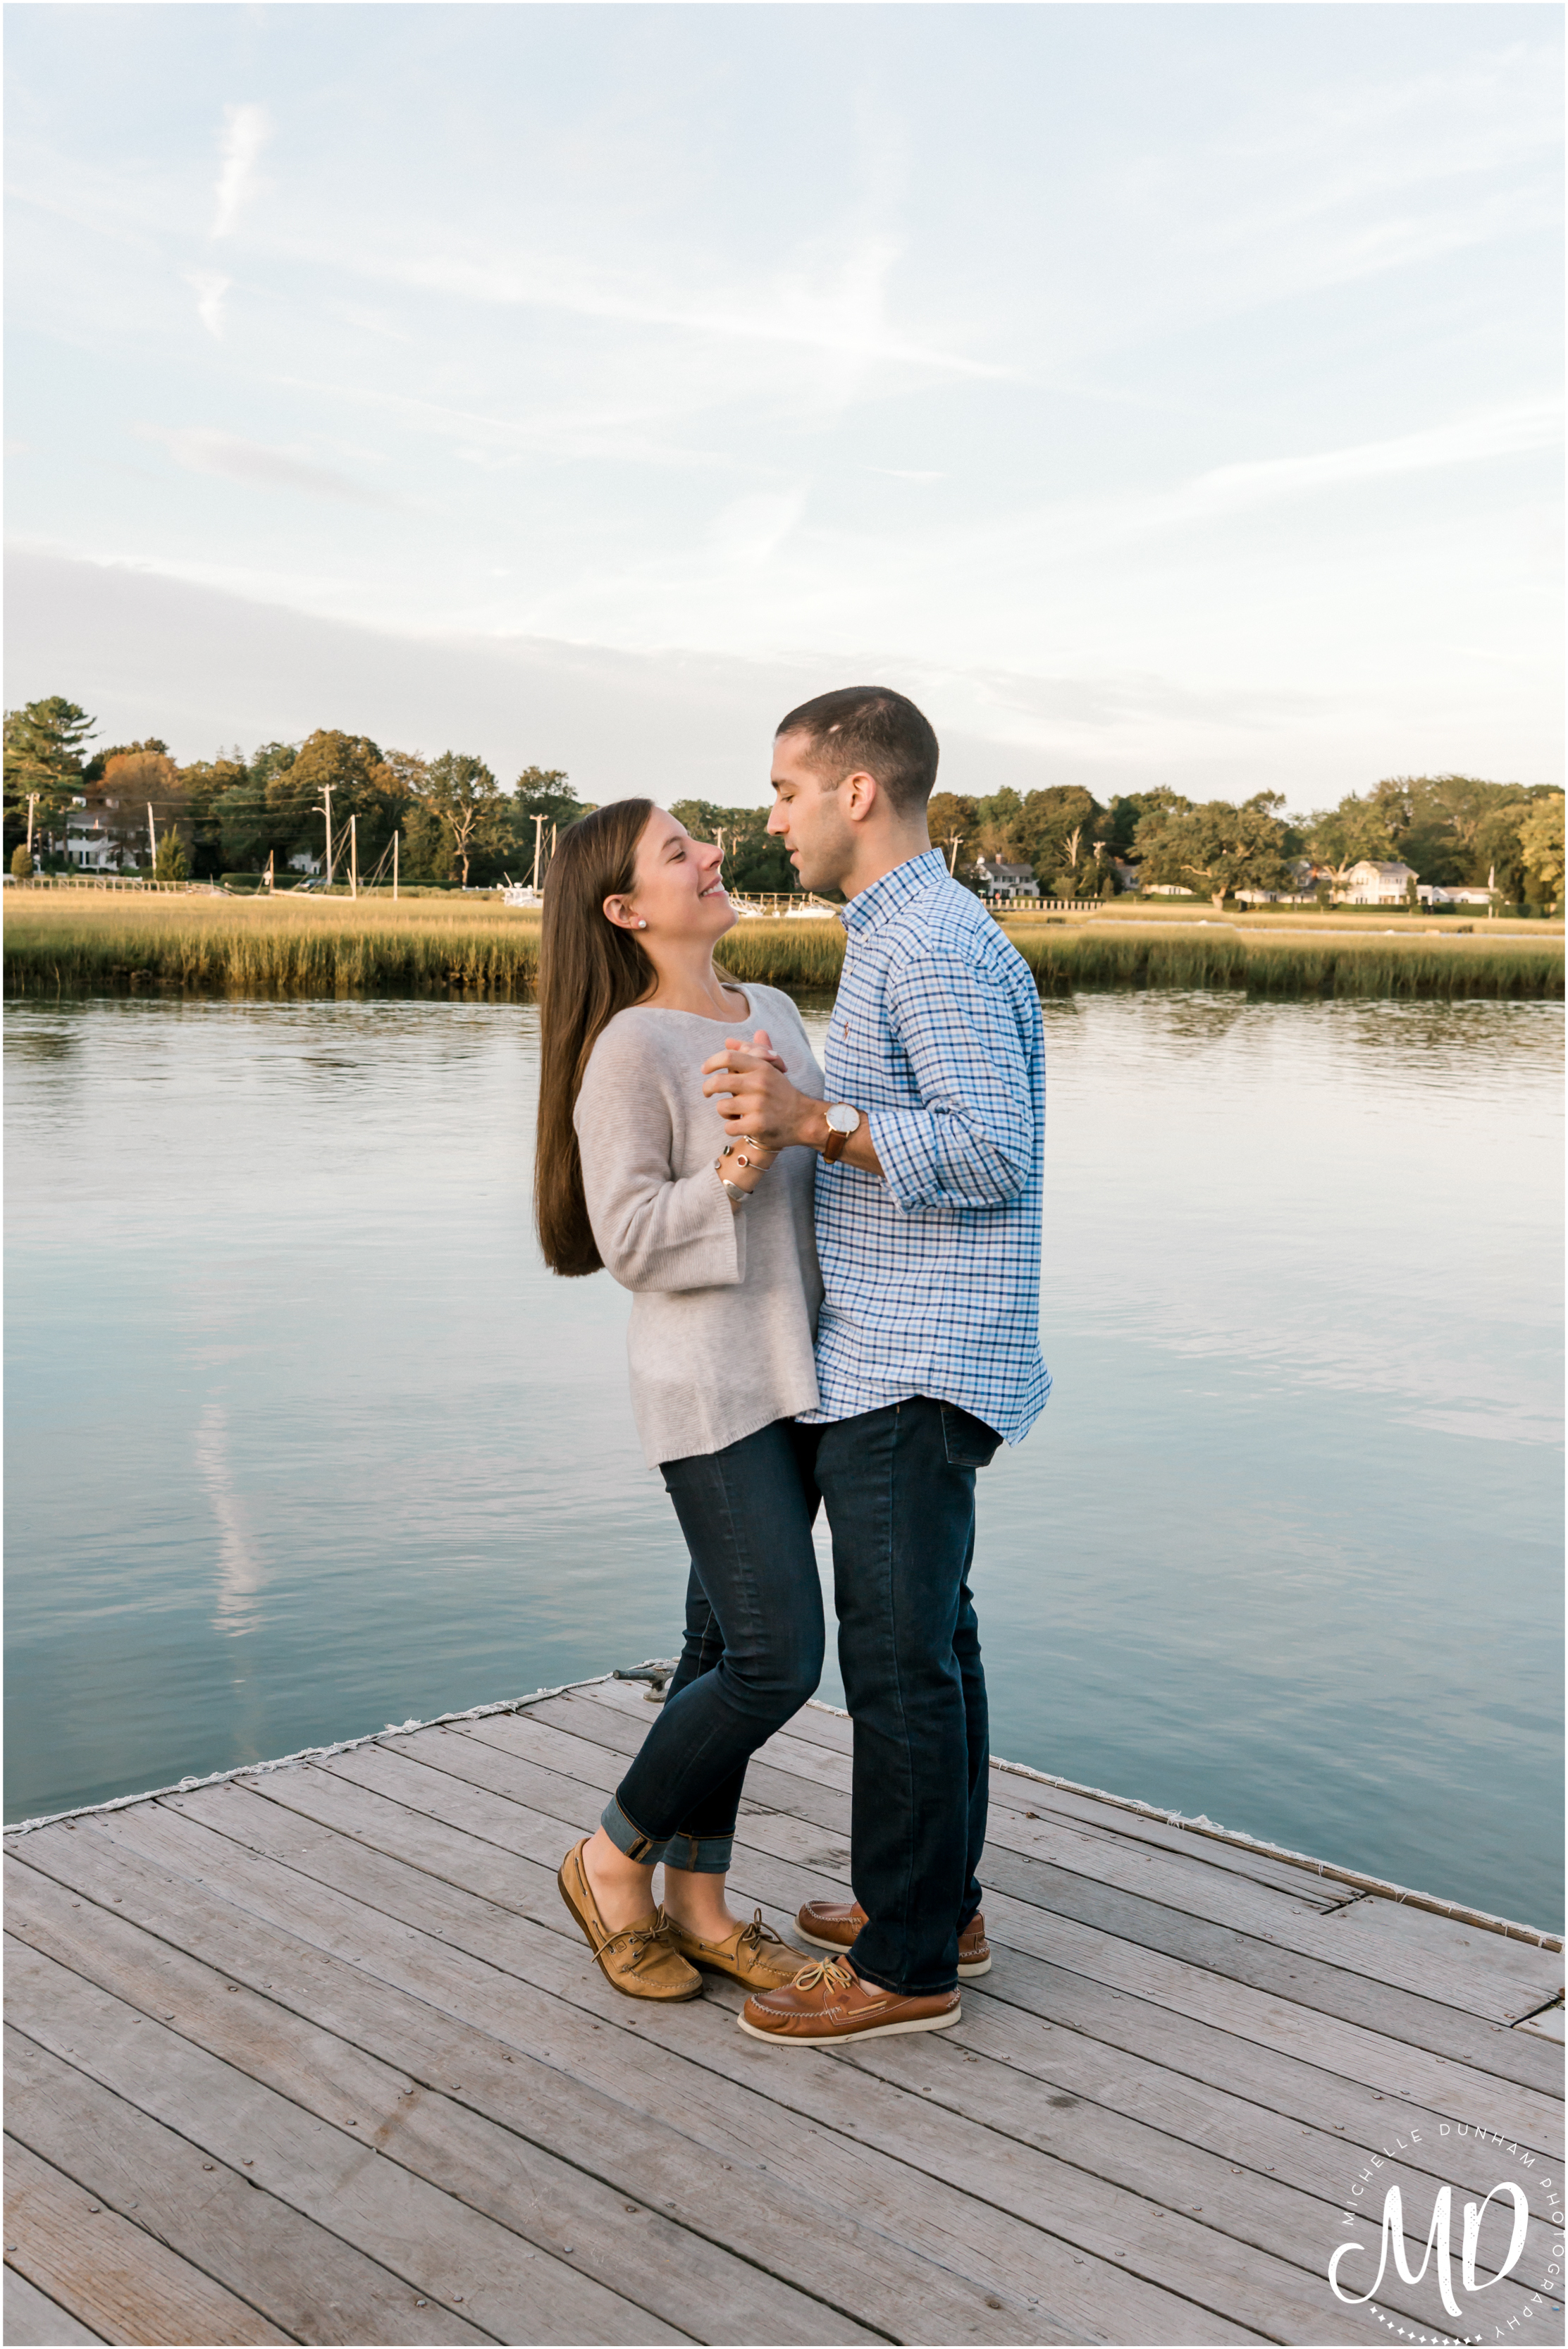 Michelle Dunham Photography-Duxbury-MA-Engagement-Bluefish-River-Bridge 15.jpg